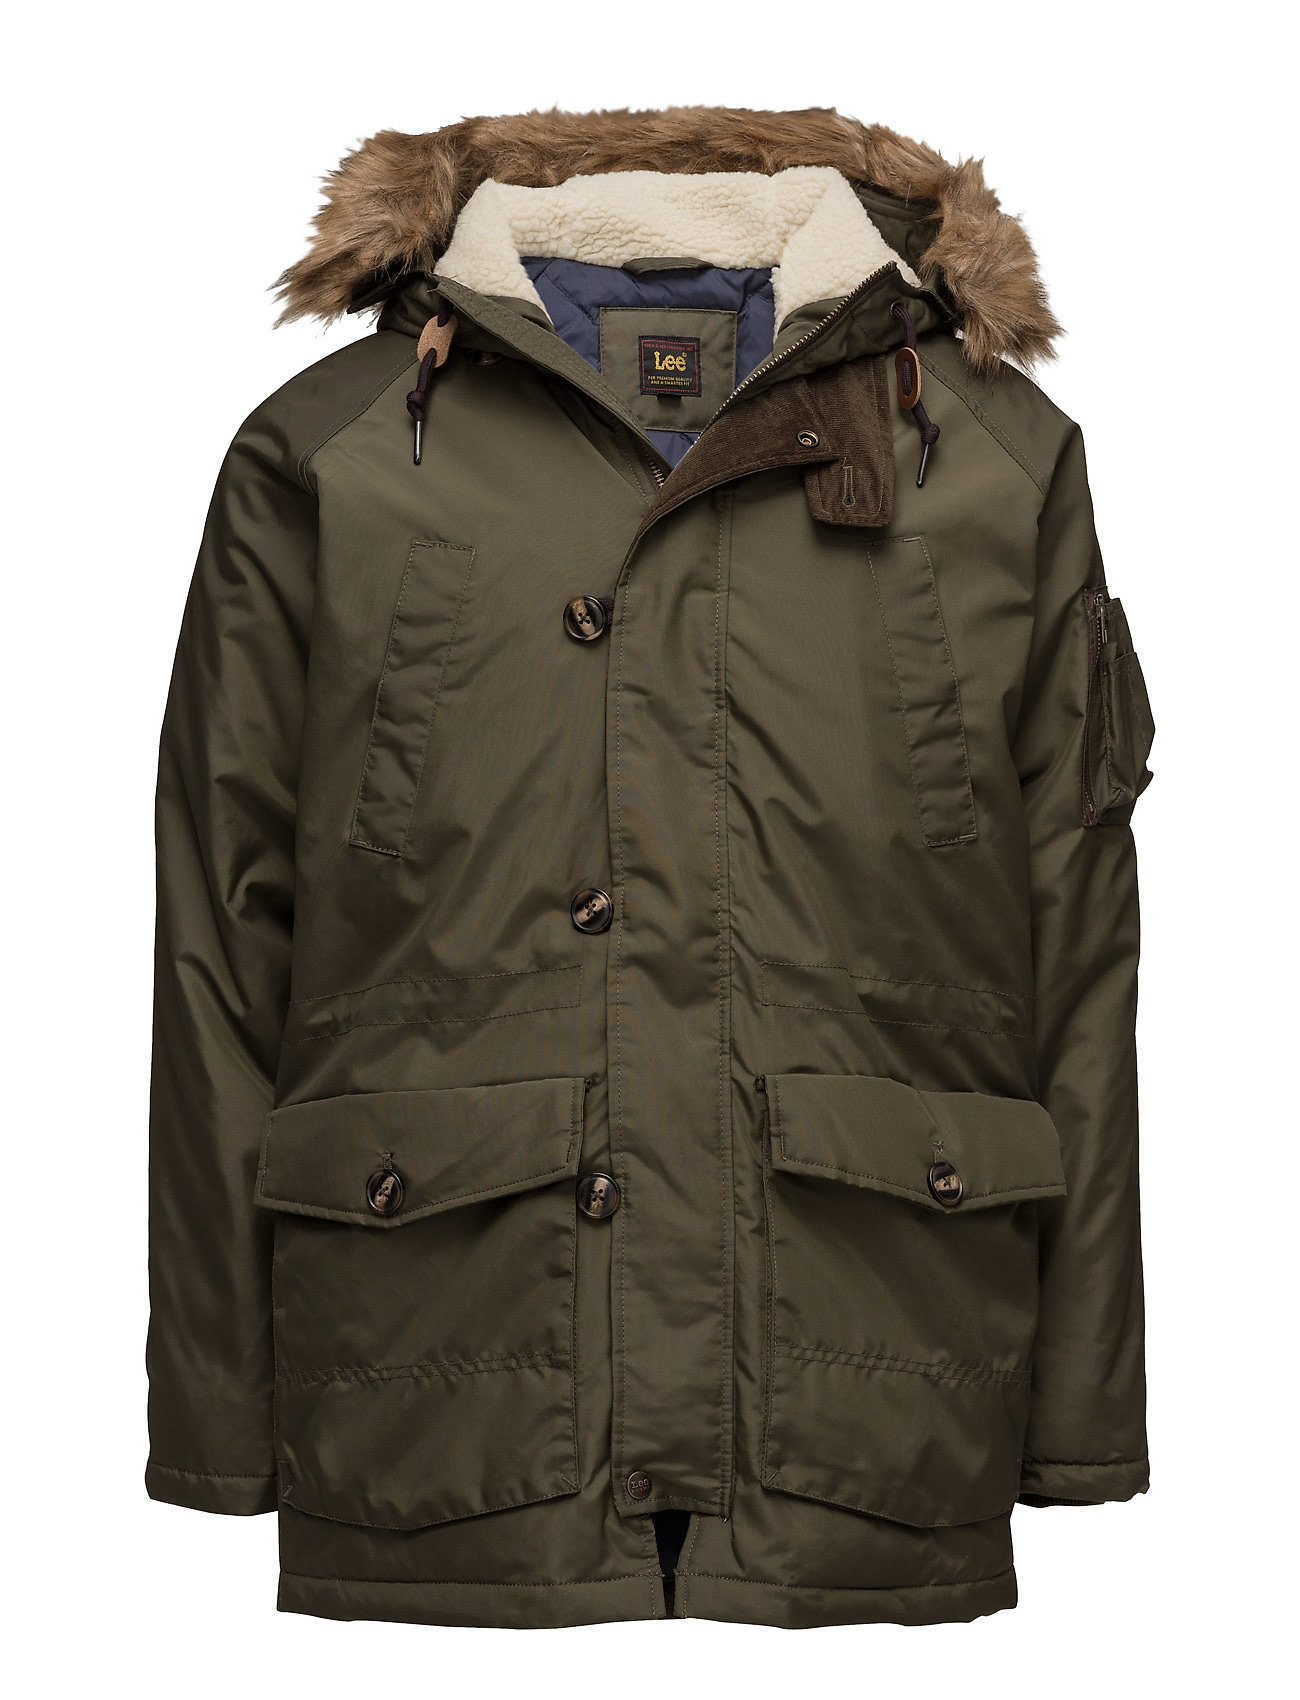 Lee Jeans ARCTIC PARKA MILITARY GREEN